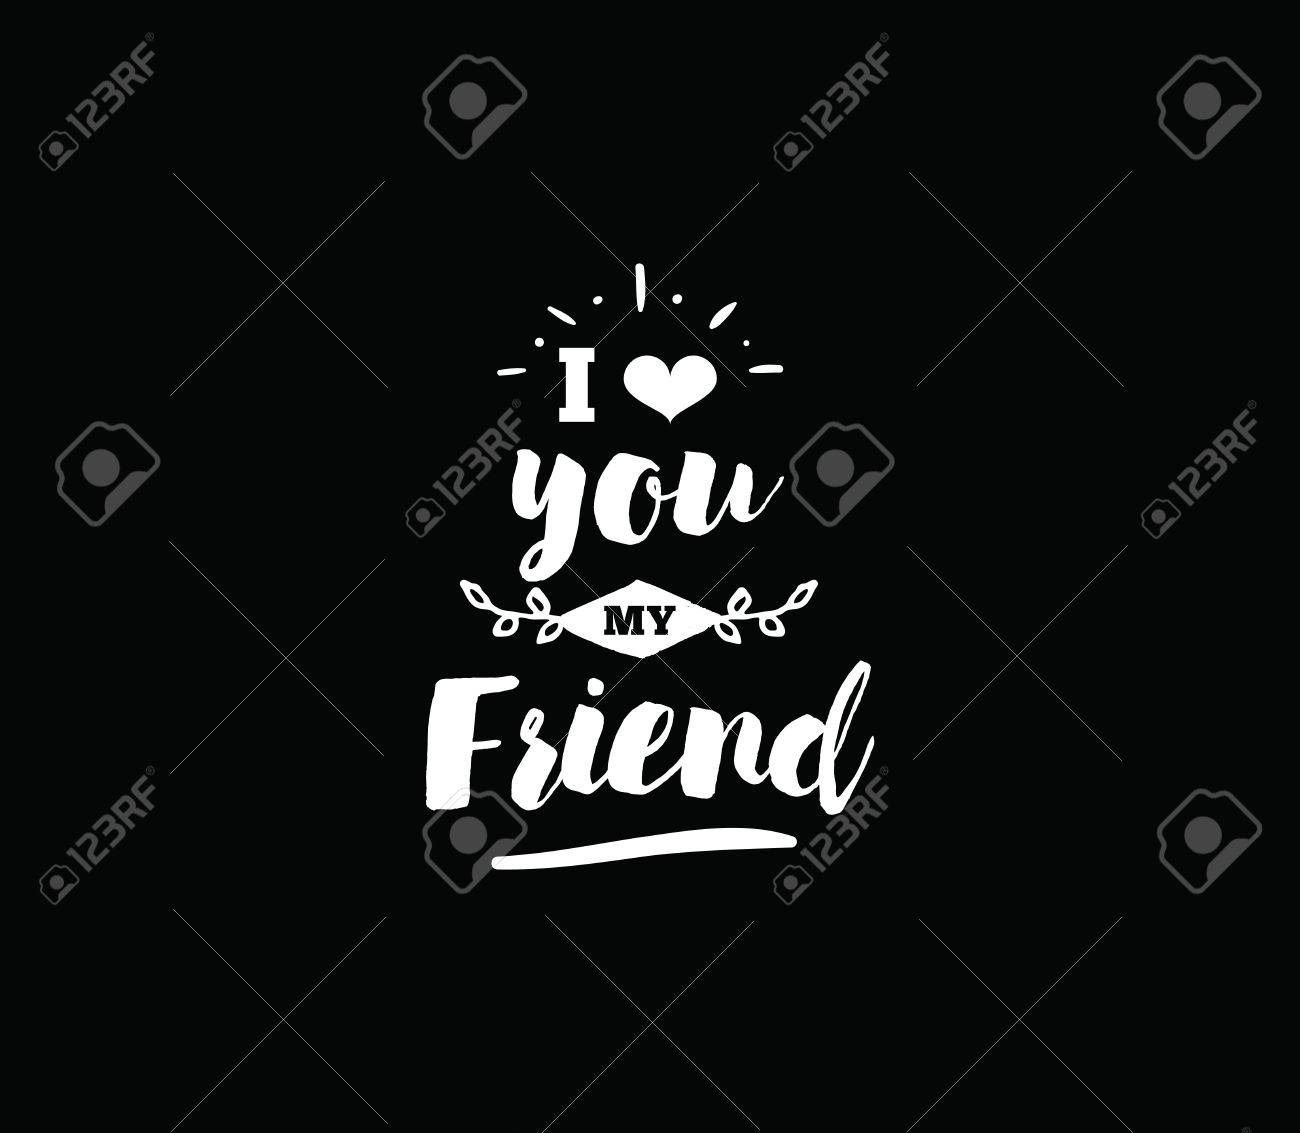 Image of: Messages Happy Friendship Day Vector Typographic Design Inspirational Quote About Friendship Usable As Greeting Cards My Happy Birthday Wishes Happy Friendship Day Vector Typographic Design Inspirational